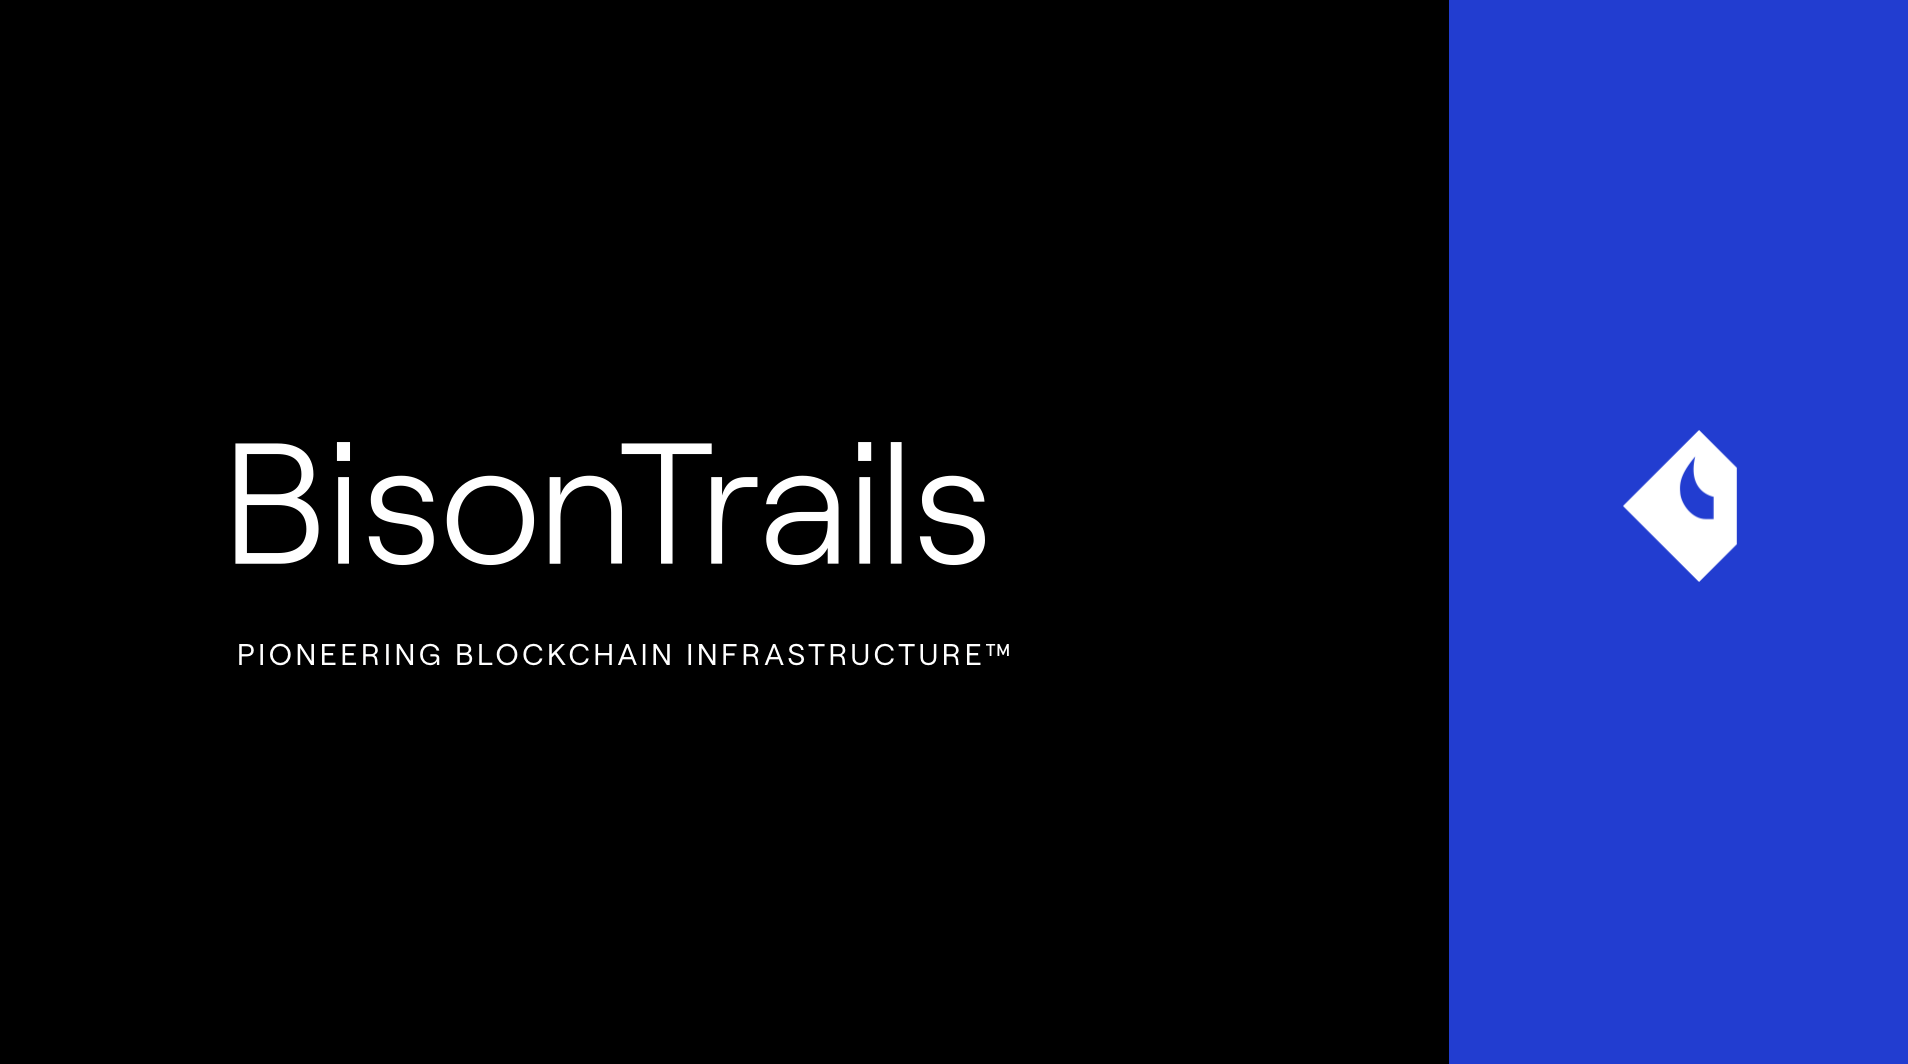 Bison Trails is Pioneering Blockchain Infrastructure™